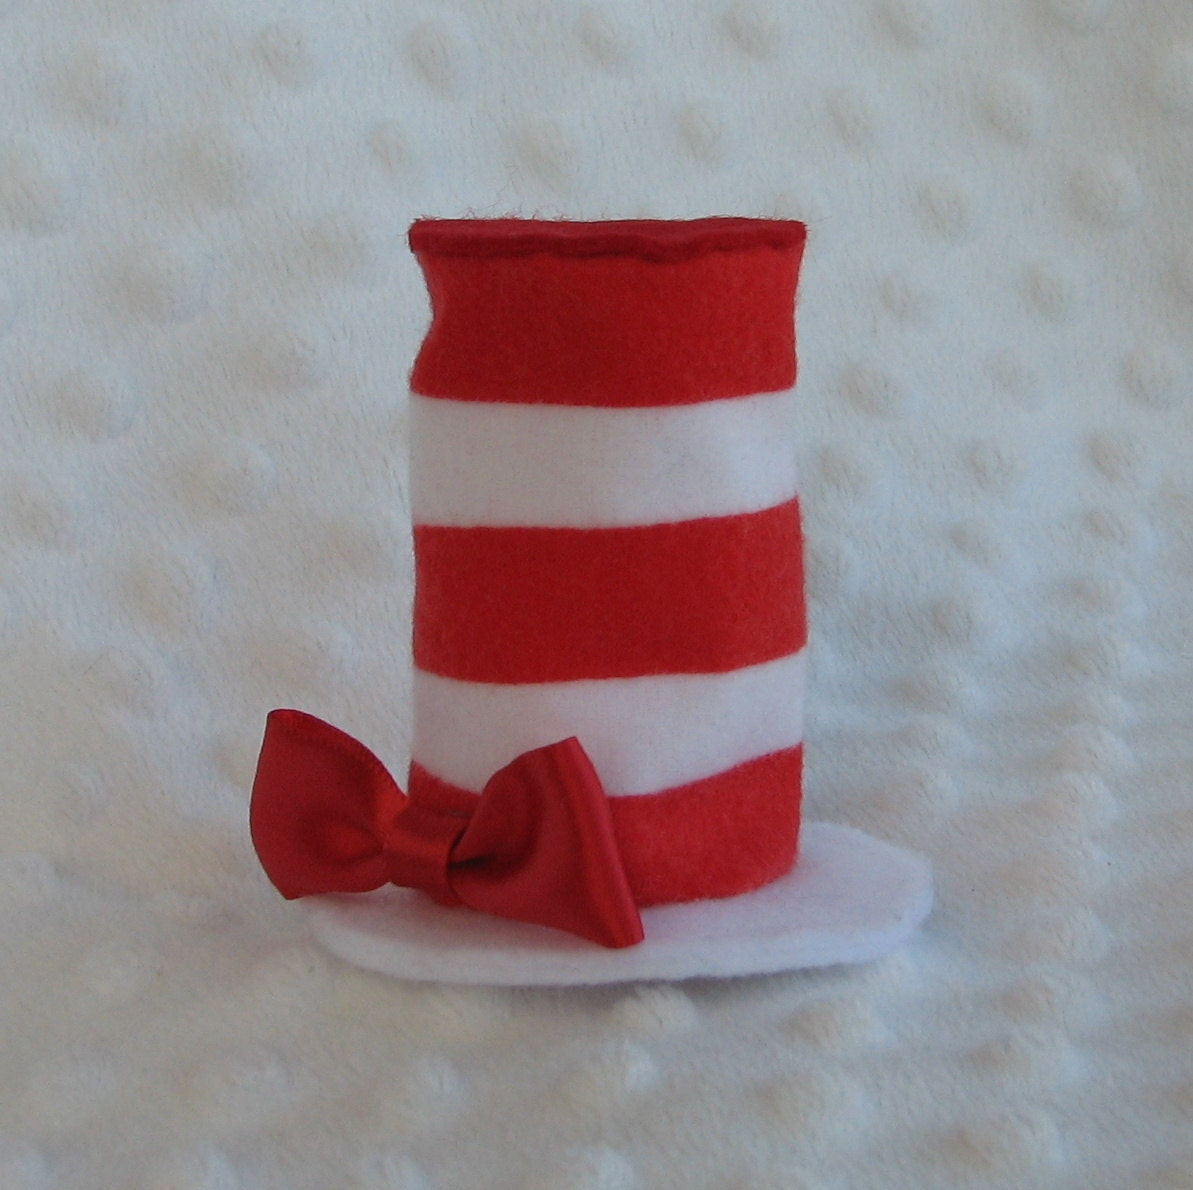 Dr Seuss Hat Clip Art Black And White Mini hat hair clip inspired by